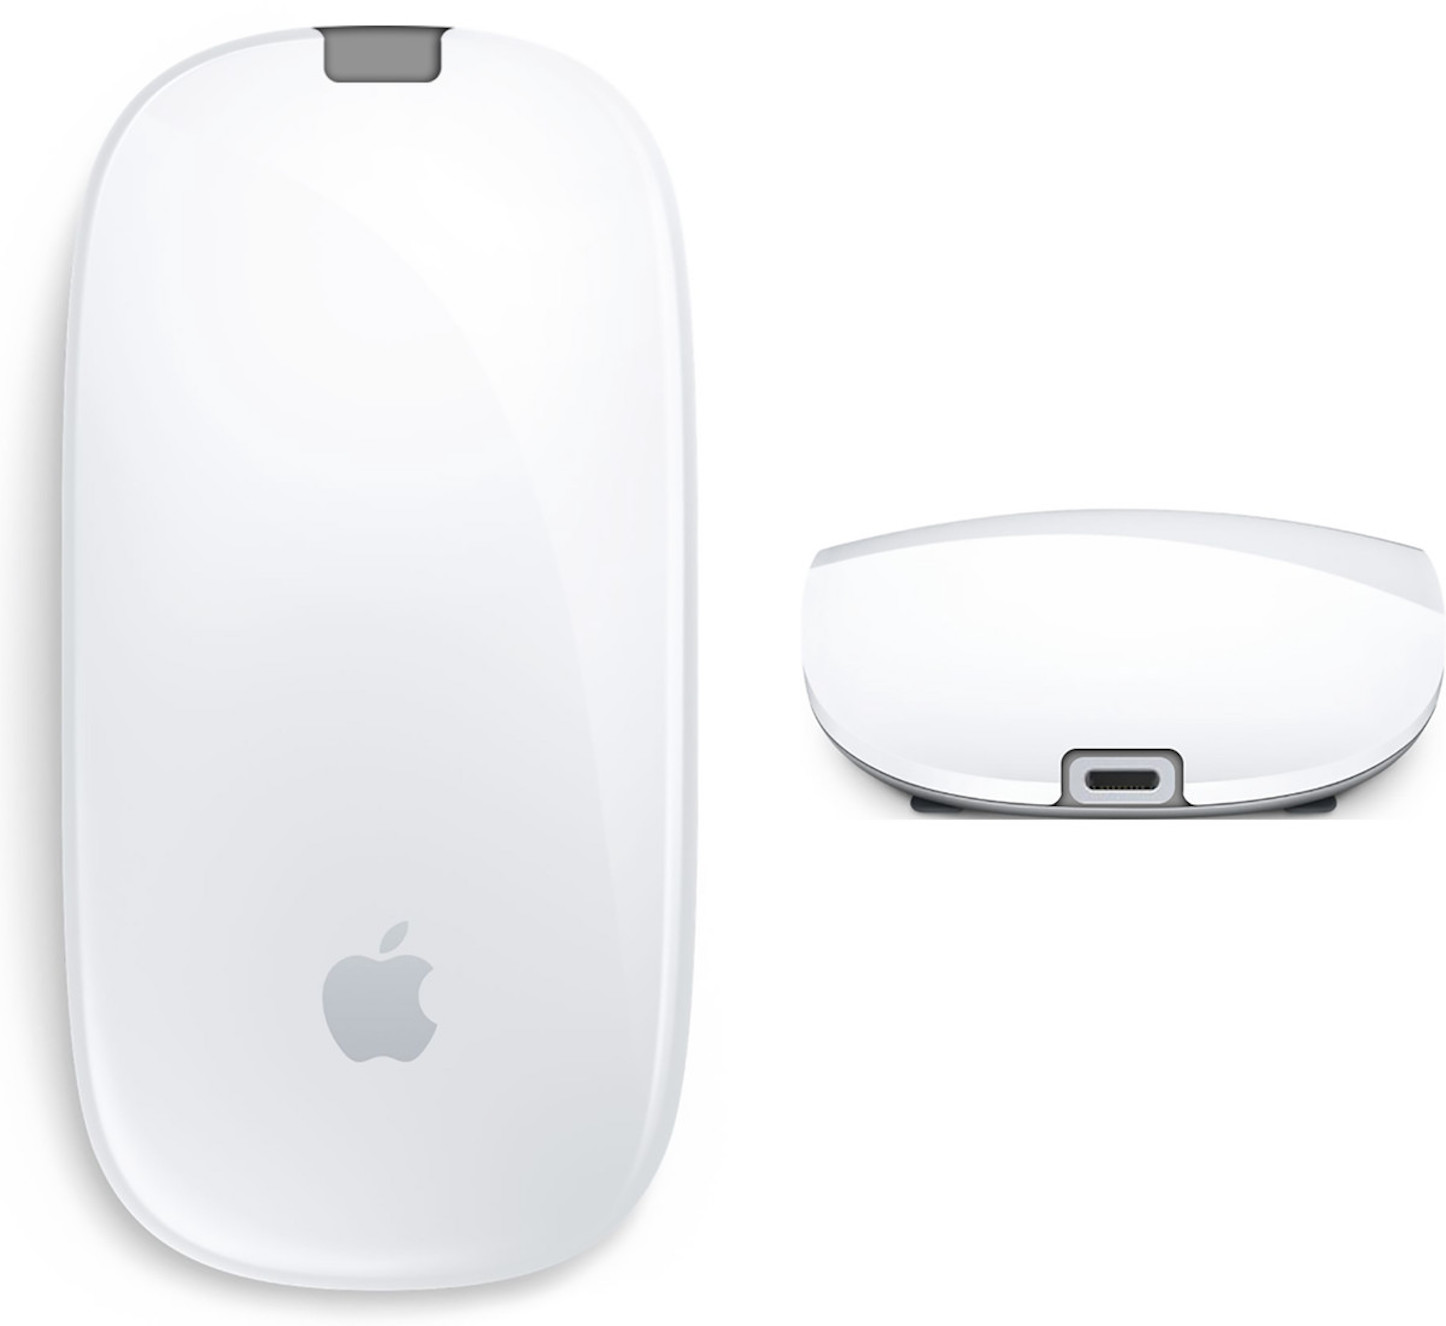 Magic mouse 2 mock up lightning port